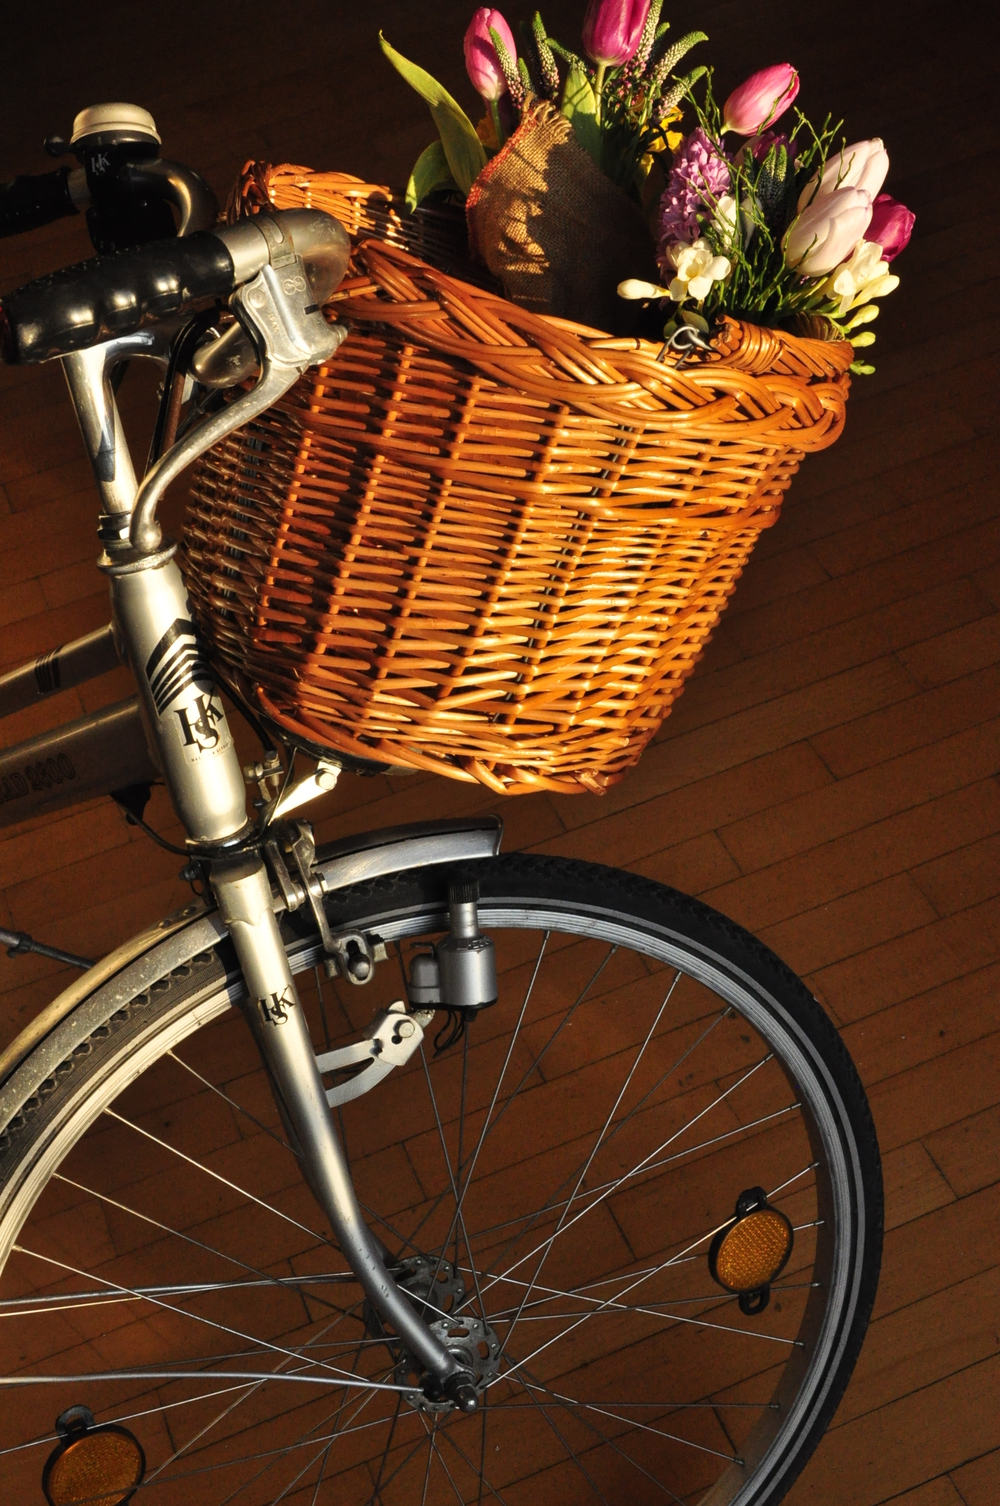 4. DELIVERY We always deliver the flowers ourselves and mostly by bike.